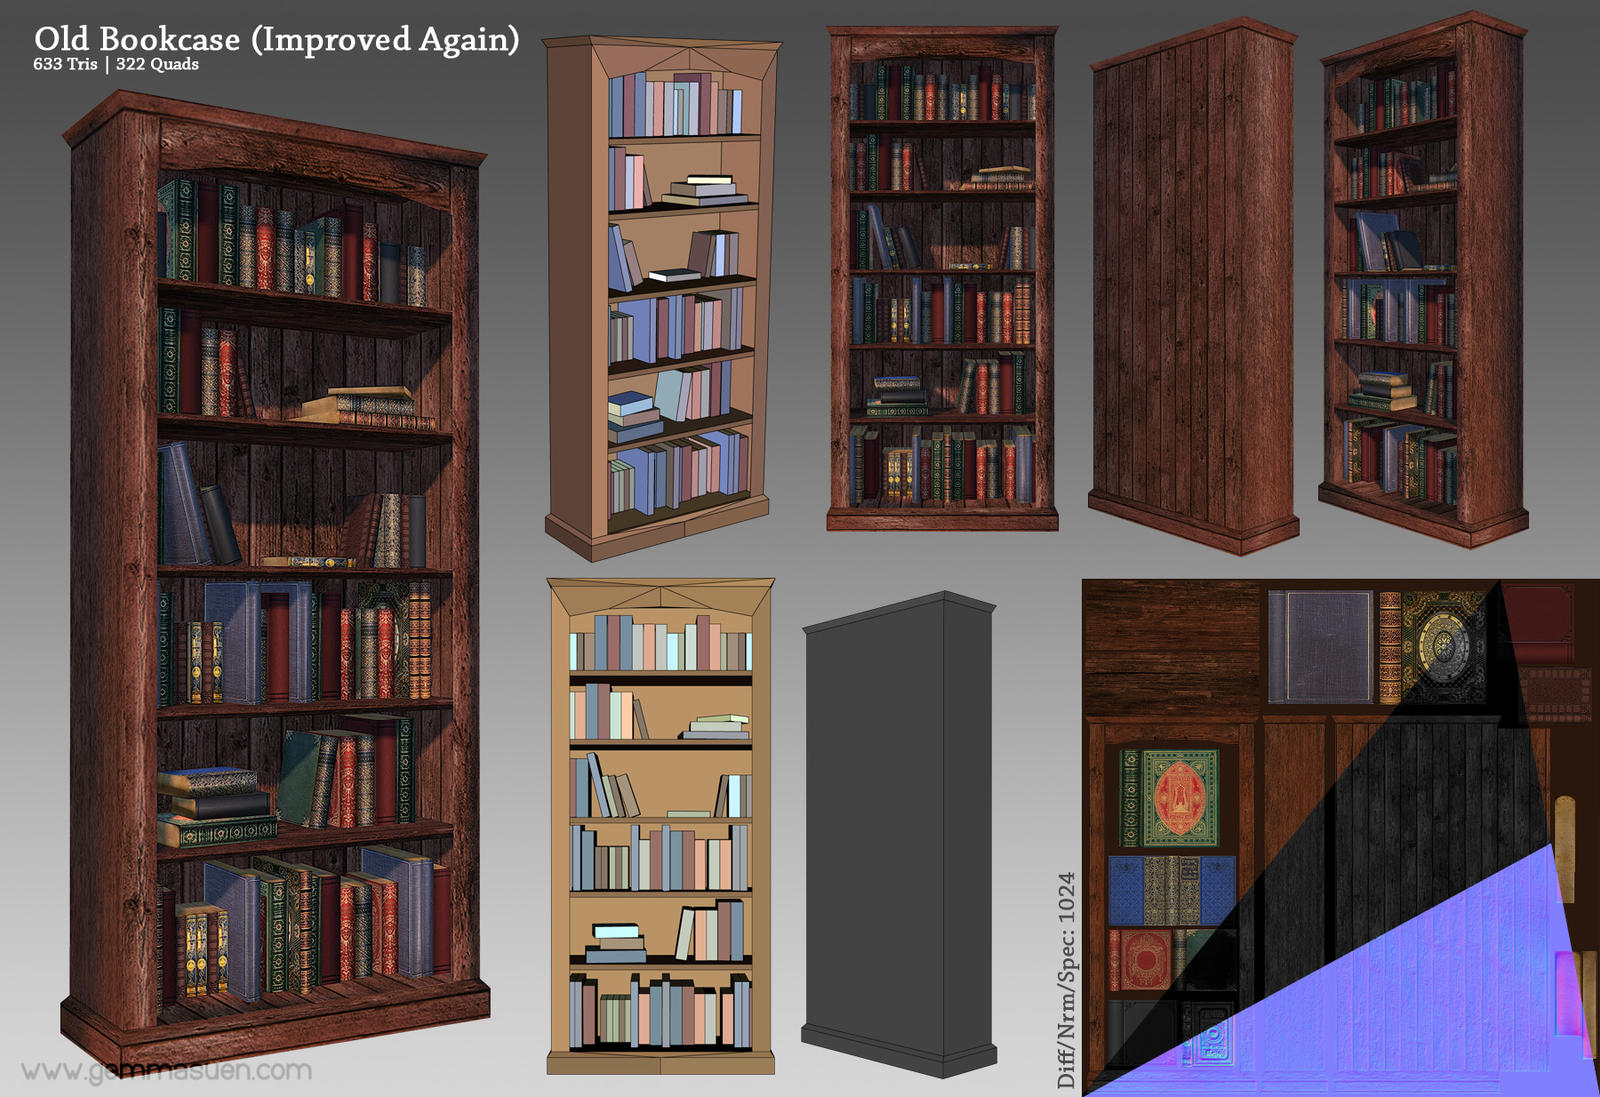 Old Bookcase Render By GemmaSuen On DeviantArt - Old book case